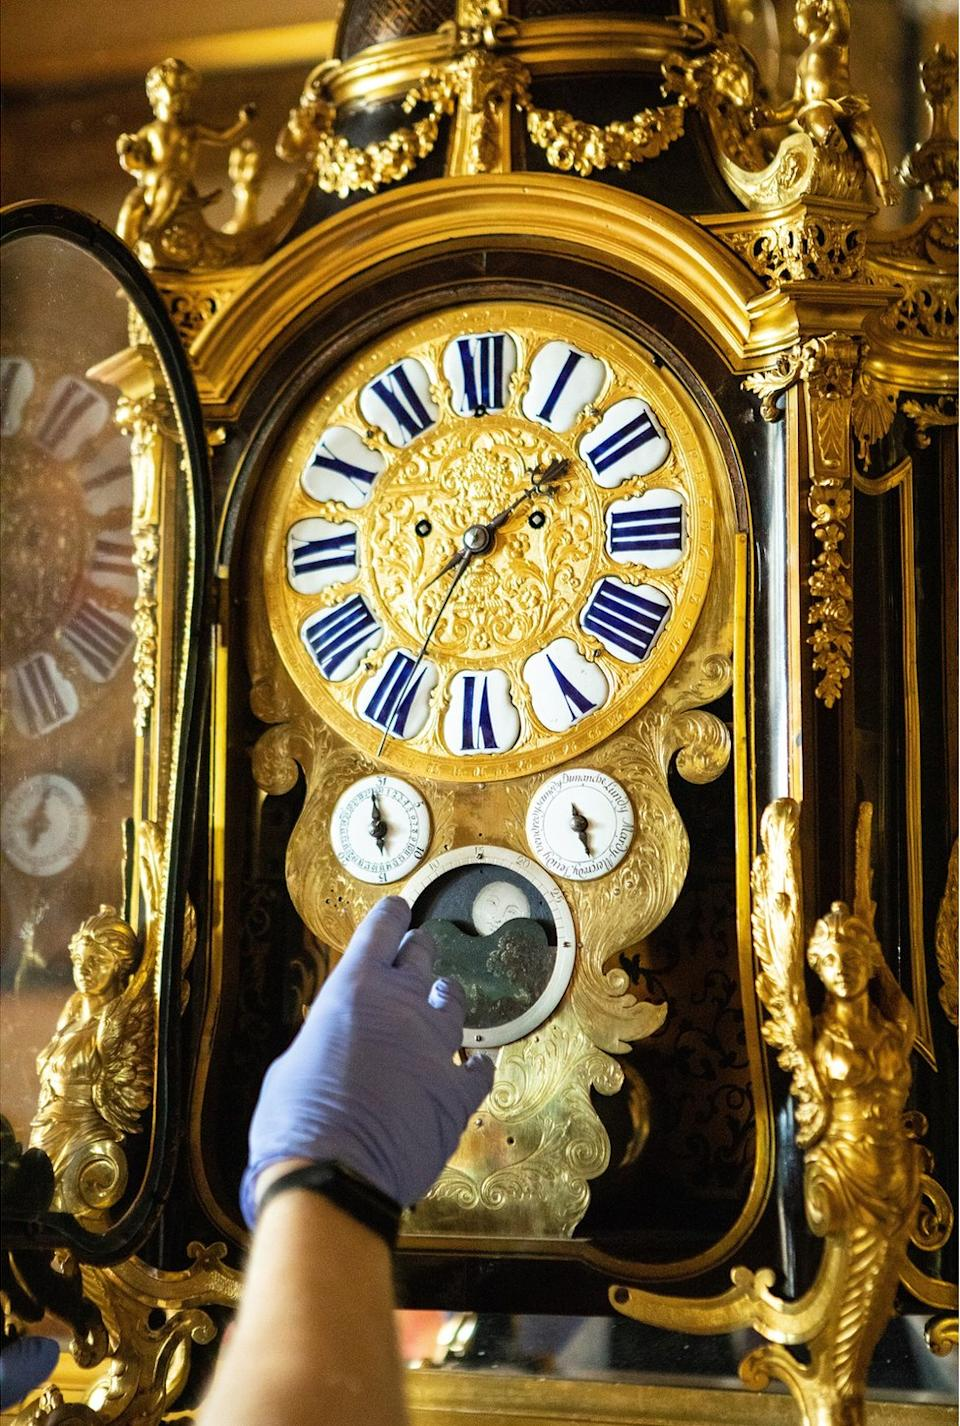 A close-up of Fjodor changing the time on a gold-decorated clock with a dial for moon changes